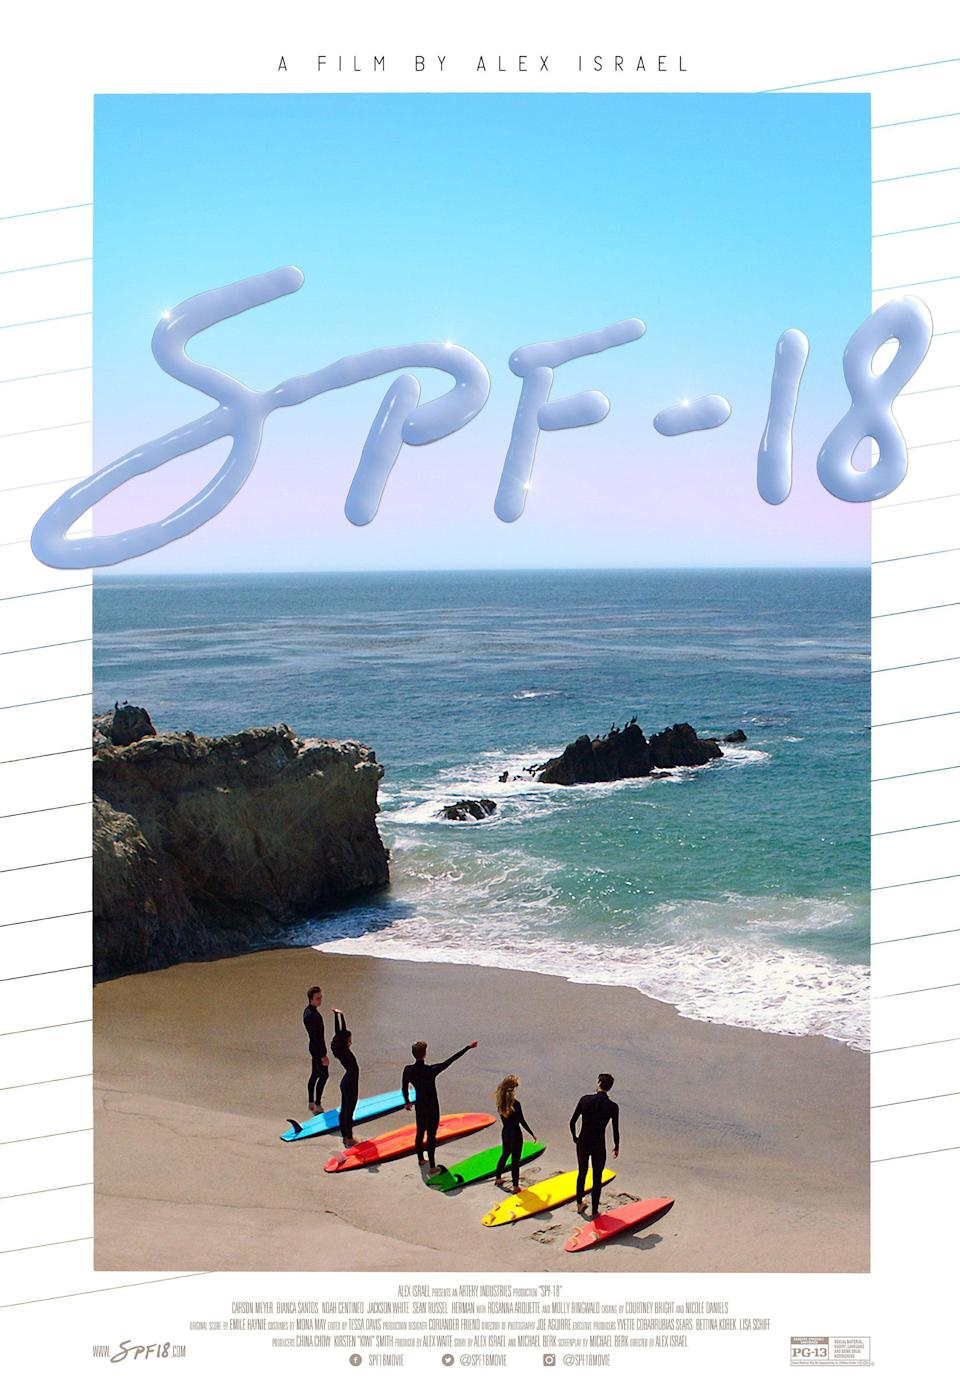 """<p>A coming-of-age romance flick, <strong>SPF-18</strong> is filled with all the young love and Noah Centineo you could want. It tells the story of four teens whose lives get engaged and changed in ways they never saw coming.</p> <p>Watch <a href=""""https://www.netflix.com/title/80192097"""" class=""""link rapid-noclick-resp"""" rel=""""nofollow noopener"""" target=""""_blank"""" data-ylk=""""slk:SPF-18""""><strong>SPF-18</strong></a> on Netflix now.</p>"""